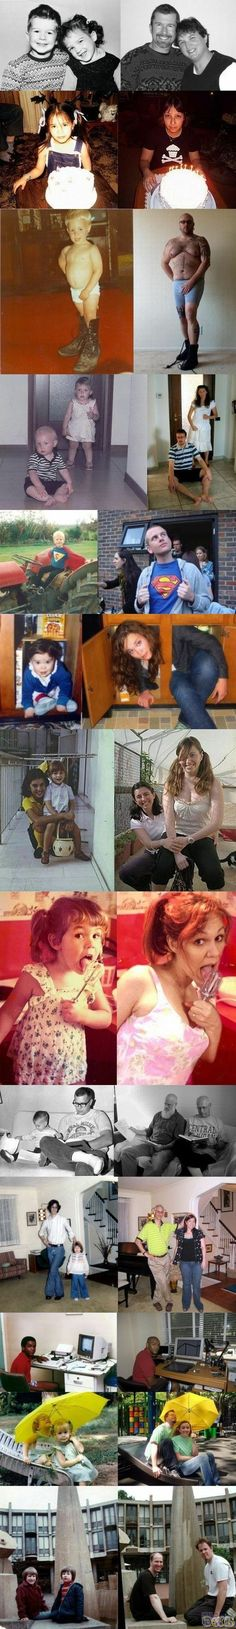 @Shannon Weaver @Ashlee McDougal Recreating childhood photos...we should seriously do this! LOL!!!